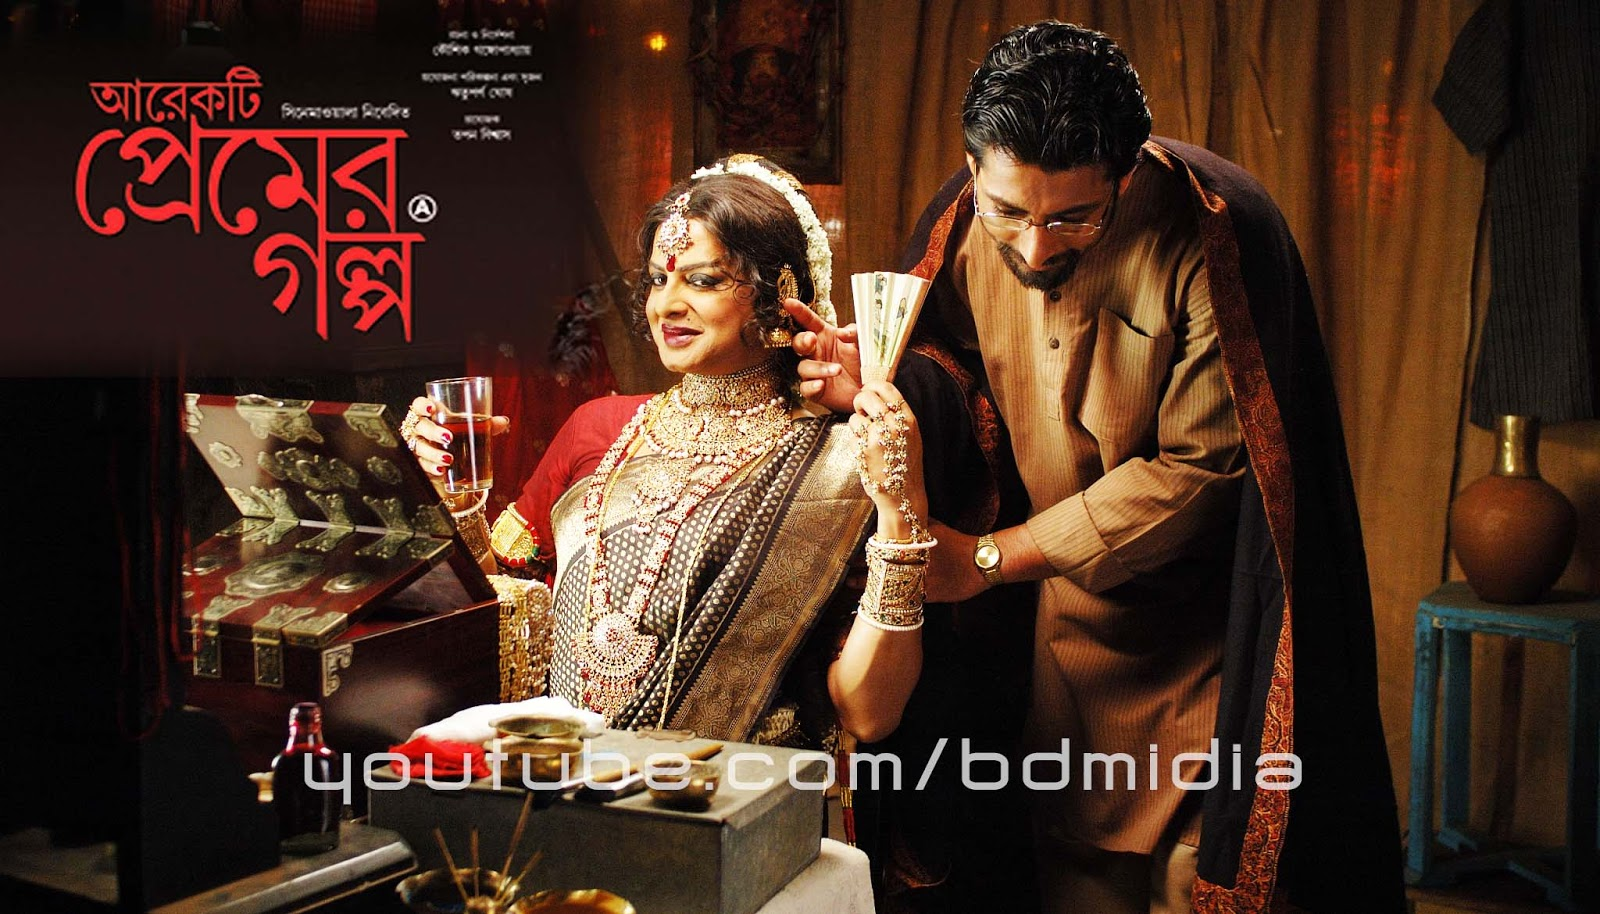 naw kolkata movies click hear..................... Arekti+Premer+Golpo+Bengali+Bangla+Official+Movie+HD+2013